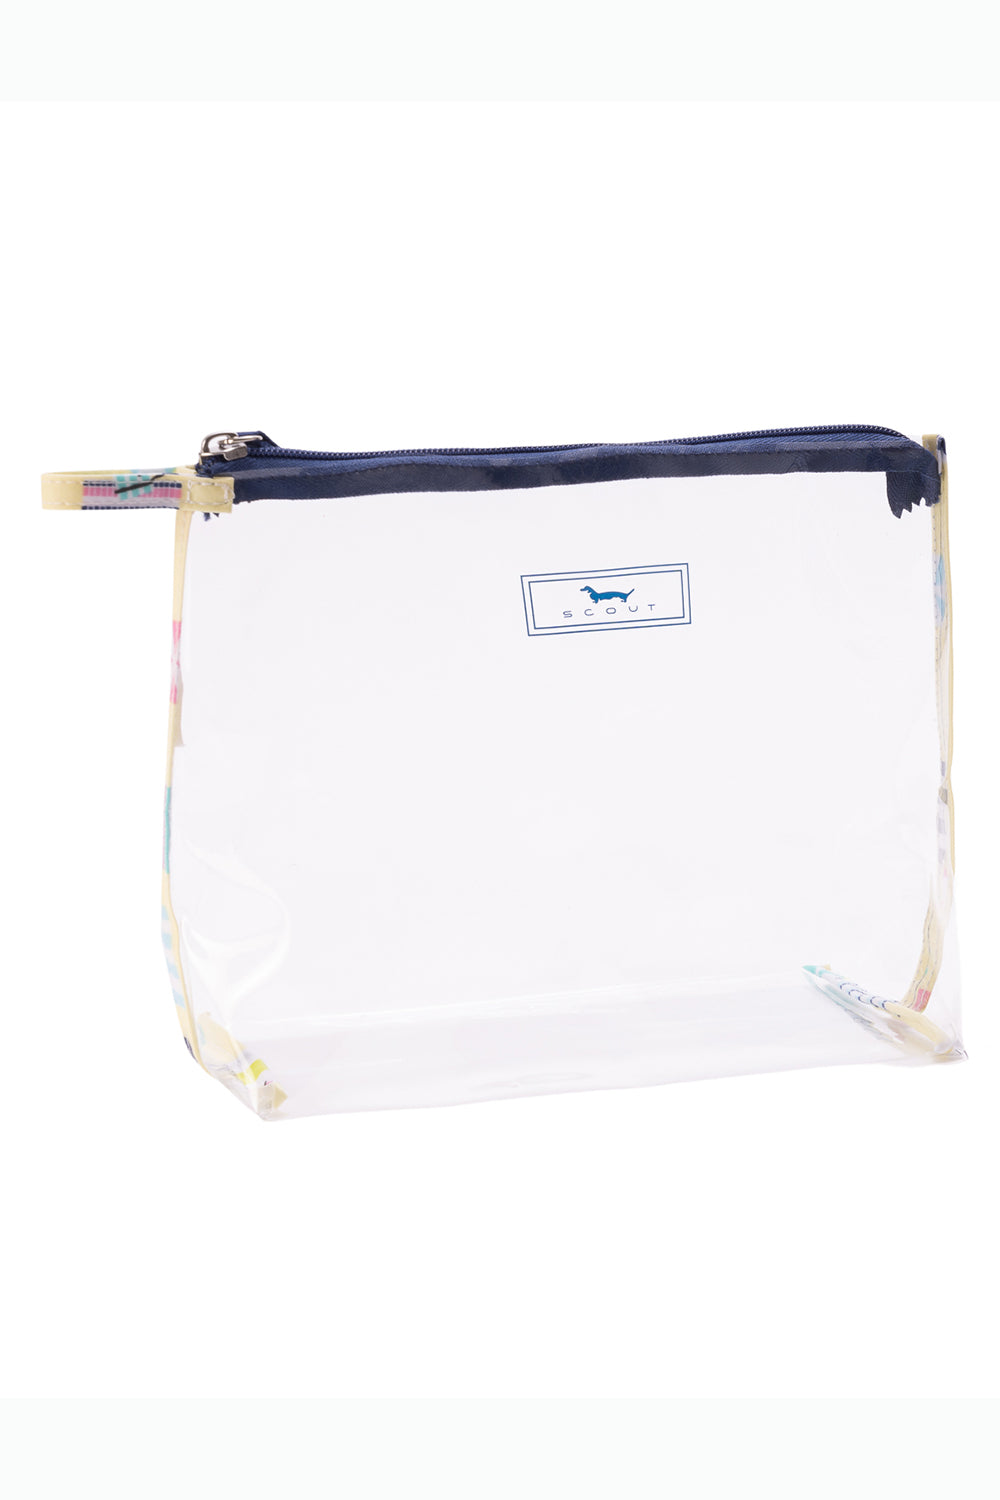 "In The Clear Cosmetic Bag - ""Shorigami"" SS20"